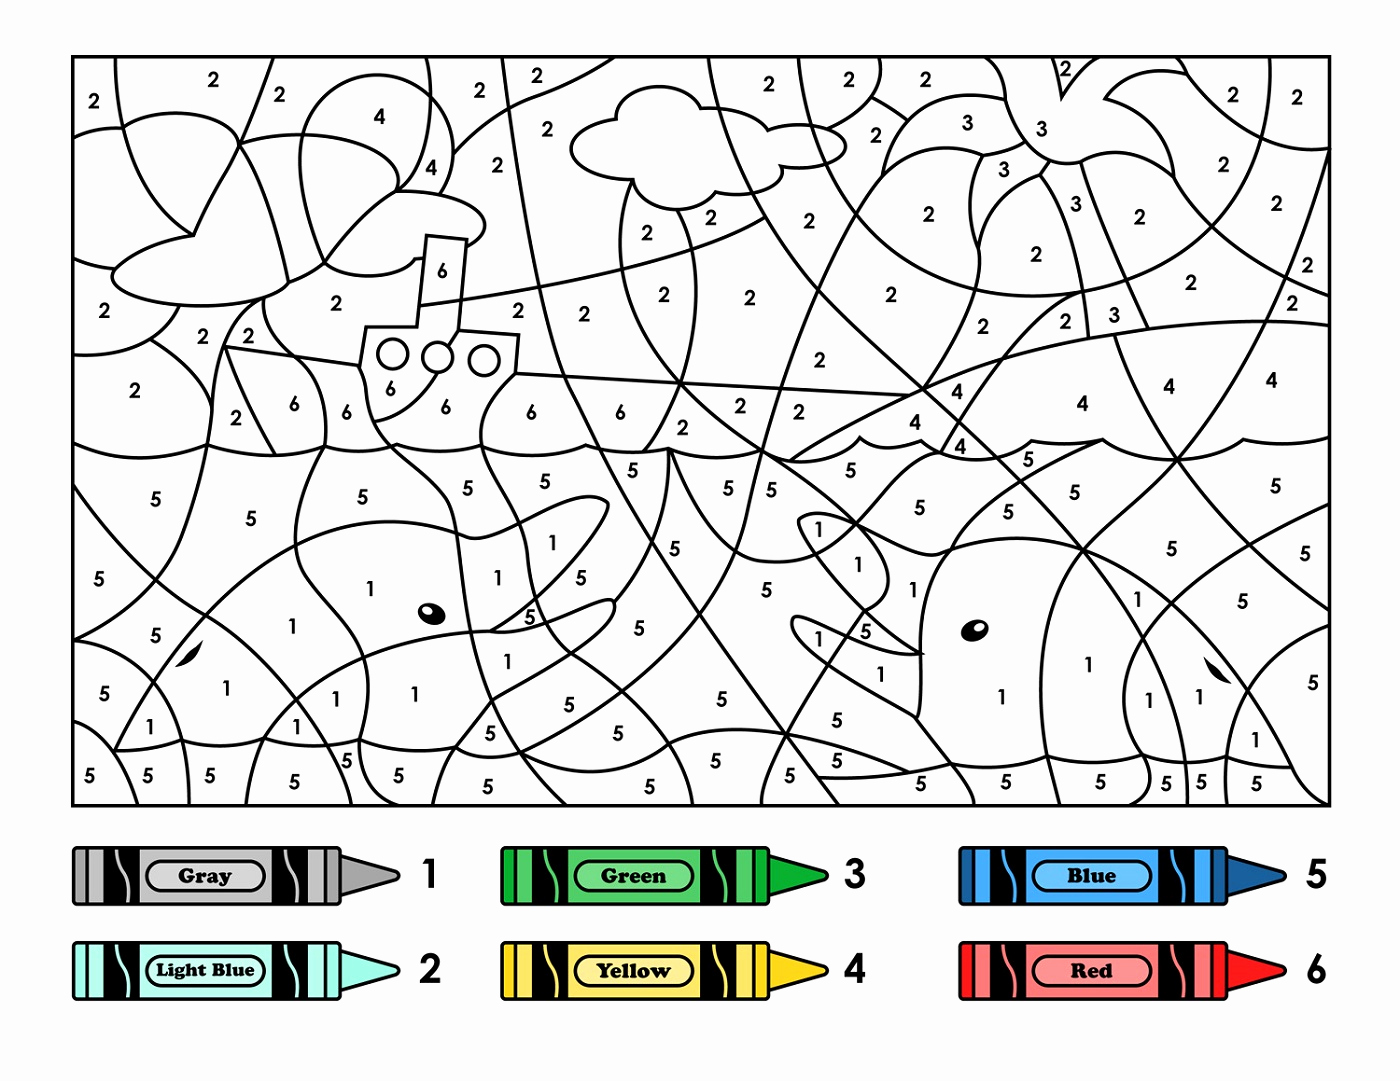 Easy Color by Number Worksheets Best Of Easy Color by Number for Preschool and Kindergarten